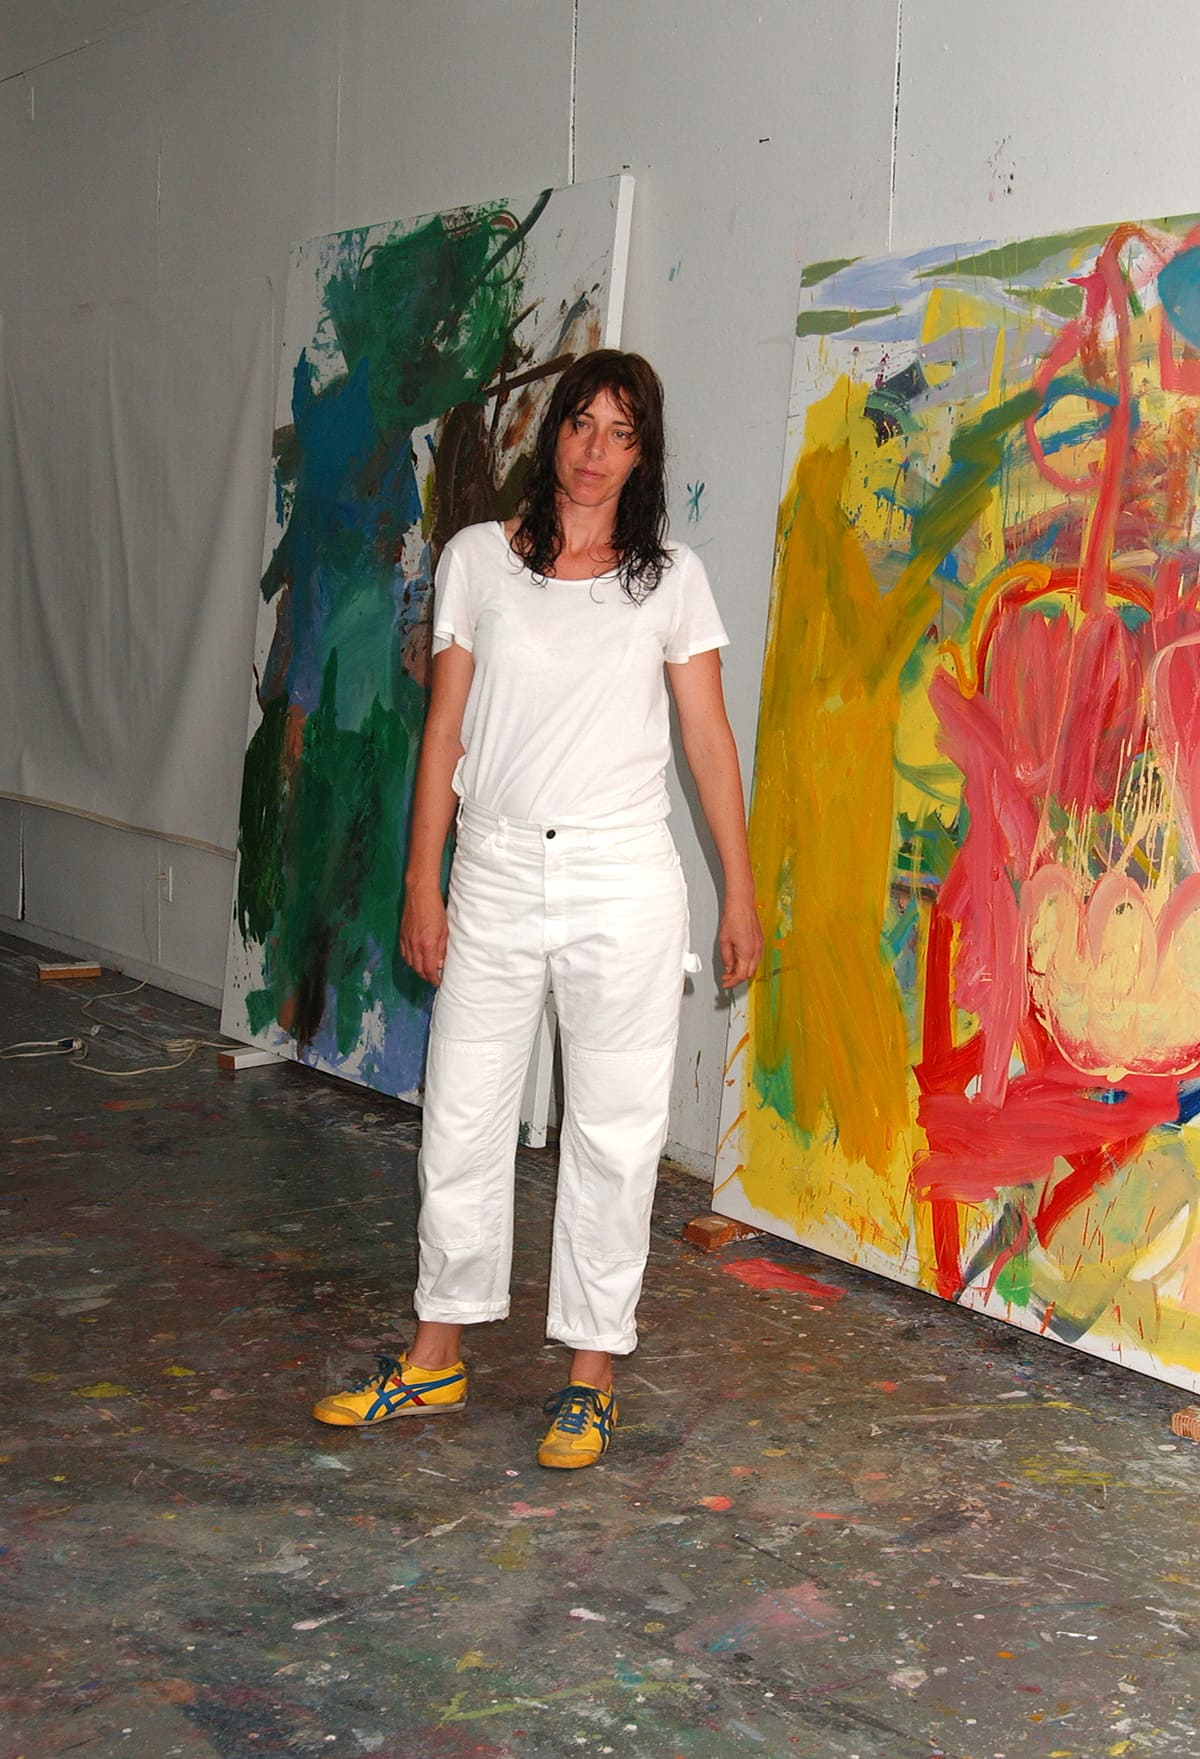 Artist Anke Weyer with her paintings during her artist-in-residency at the former home/studio of artist Elaine de Kooning in East Hampton, New York. After Elaine de Kooning died the sculptor John Chamberlain bought the property and worked here.